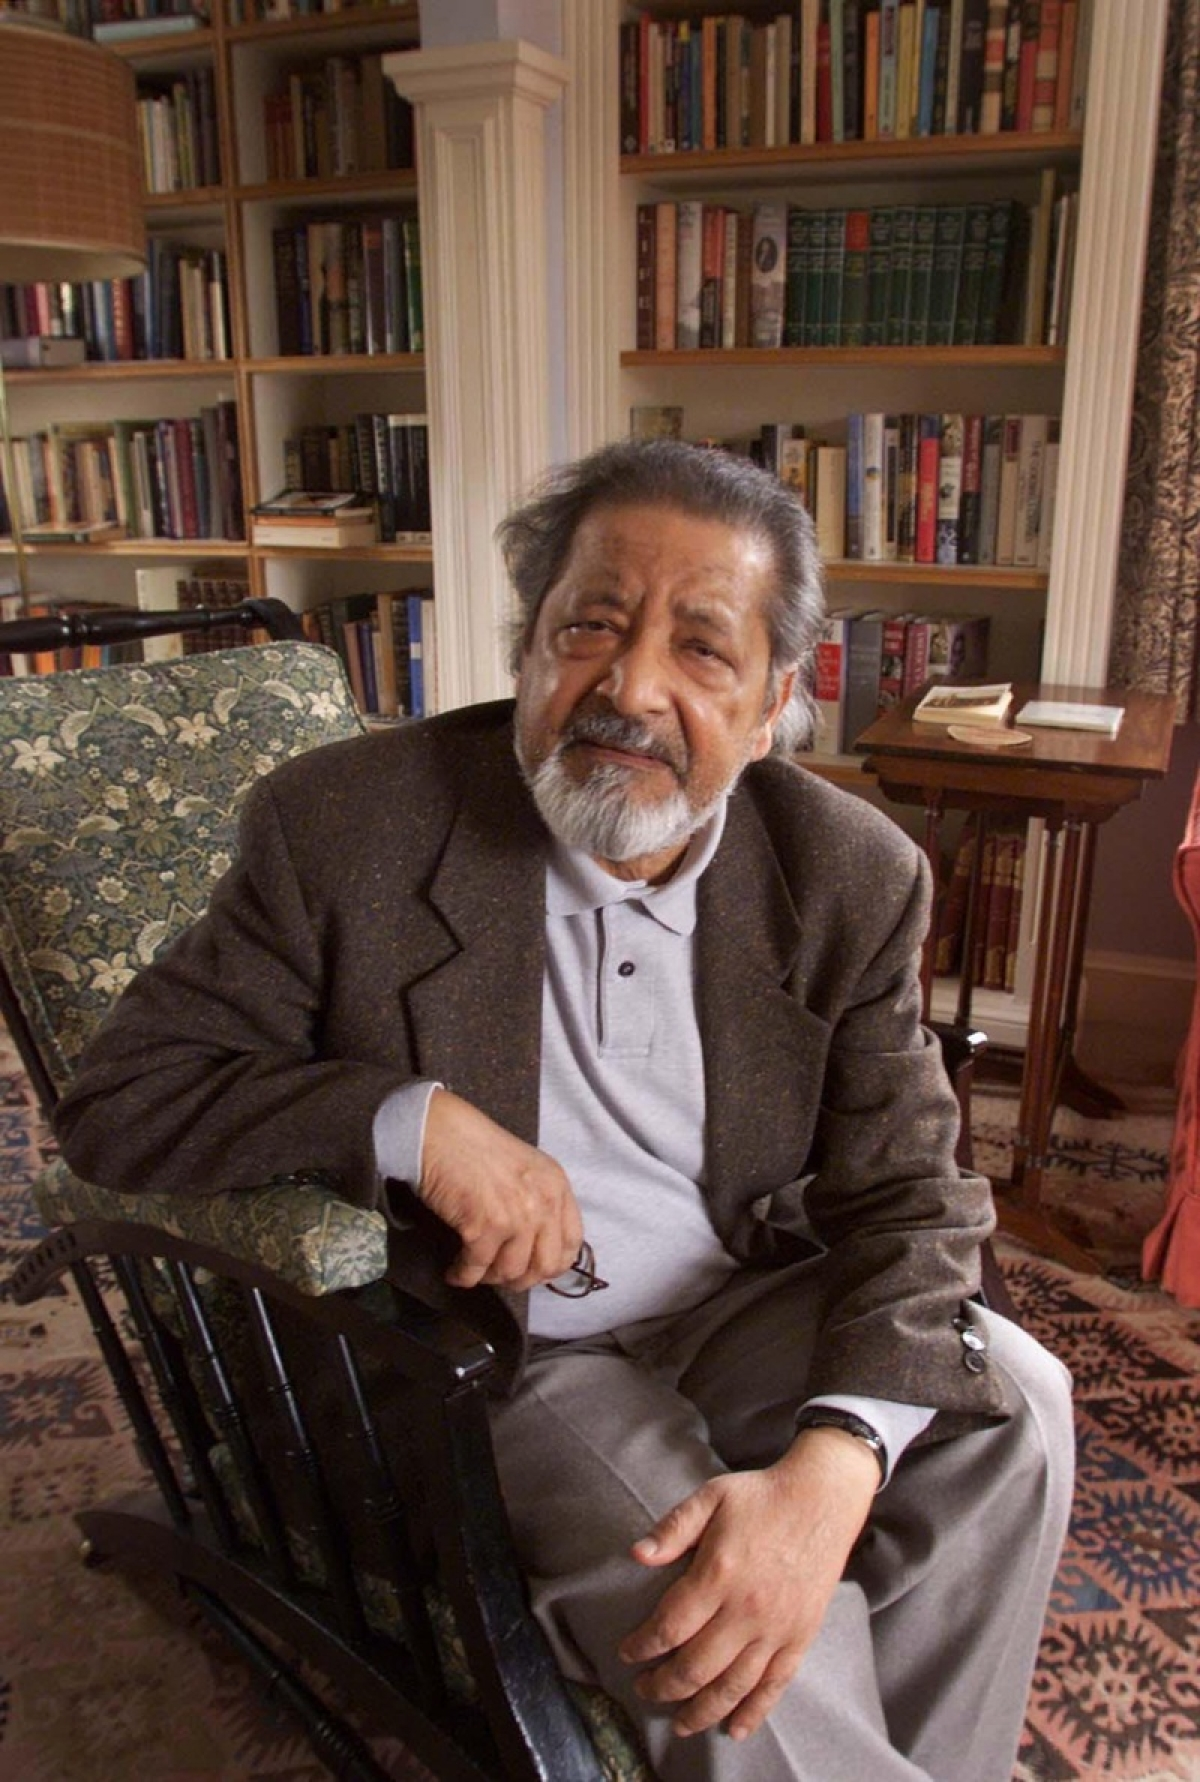 From absurdist to absurd: The spurious case of VS Naipaul